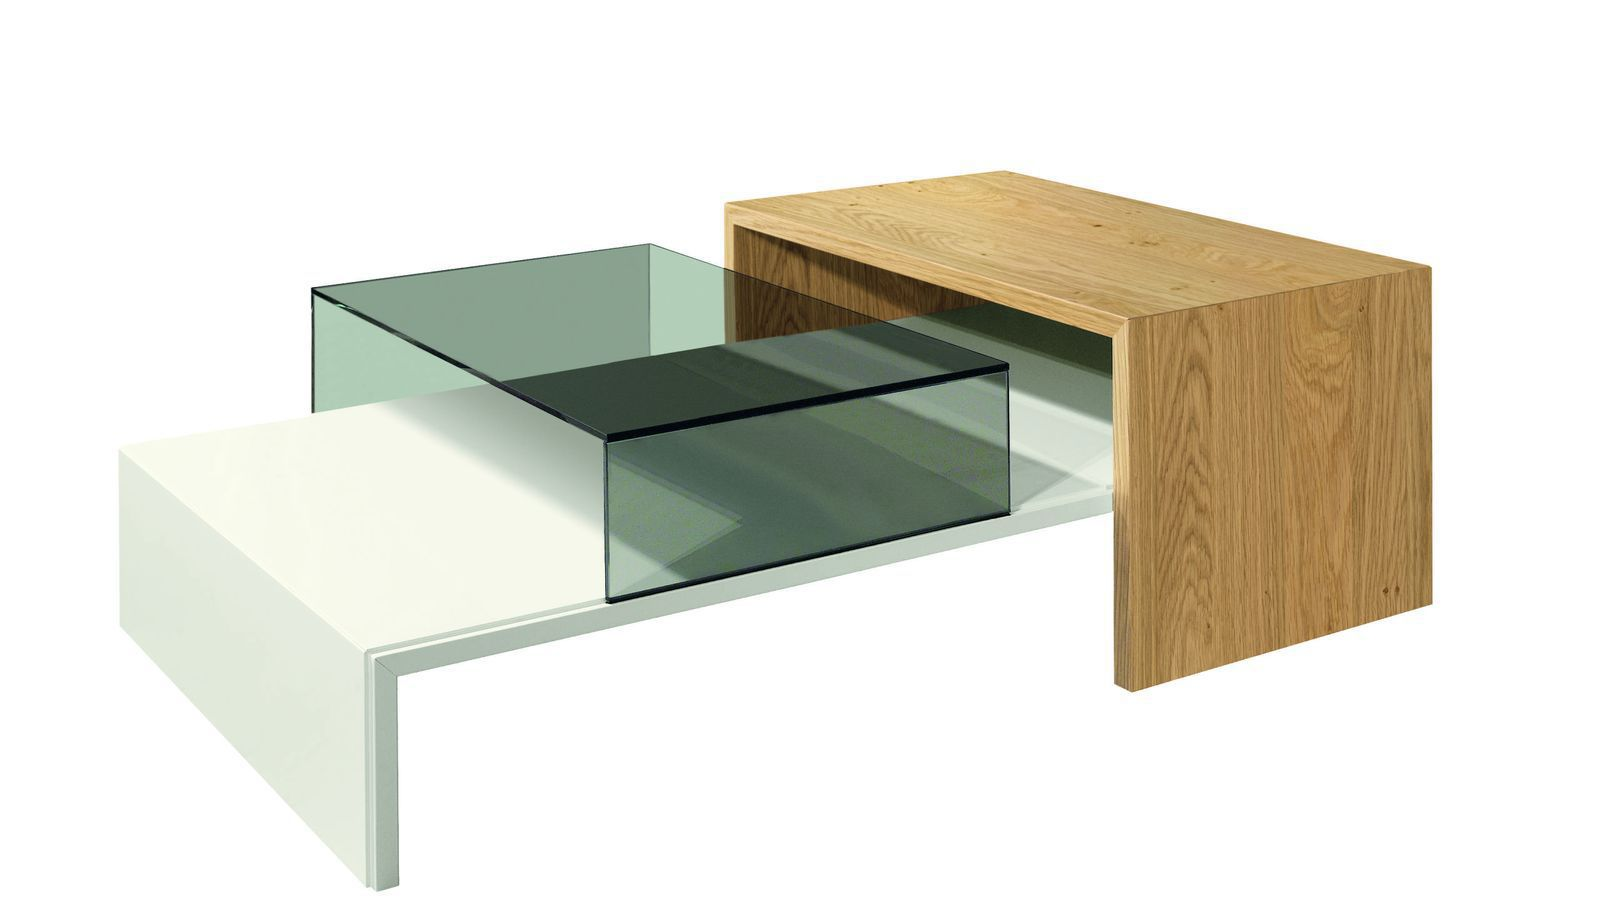 Design Couchtisch Spin Contemporary Coffee Table Glass Oak Lacquered Wood Now No